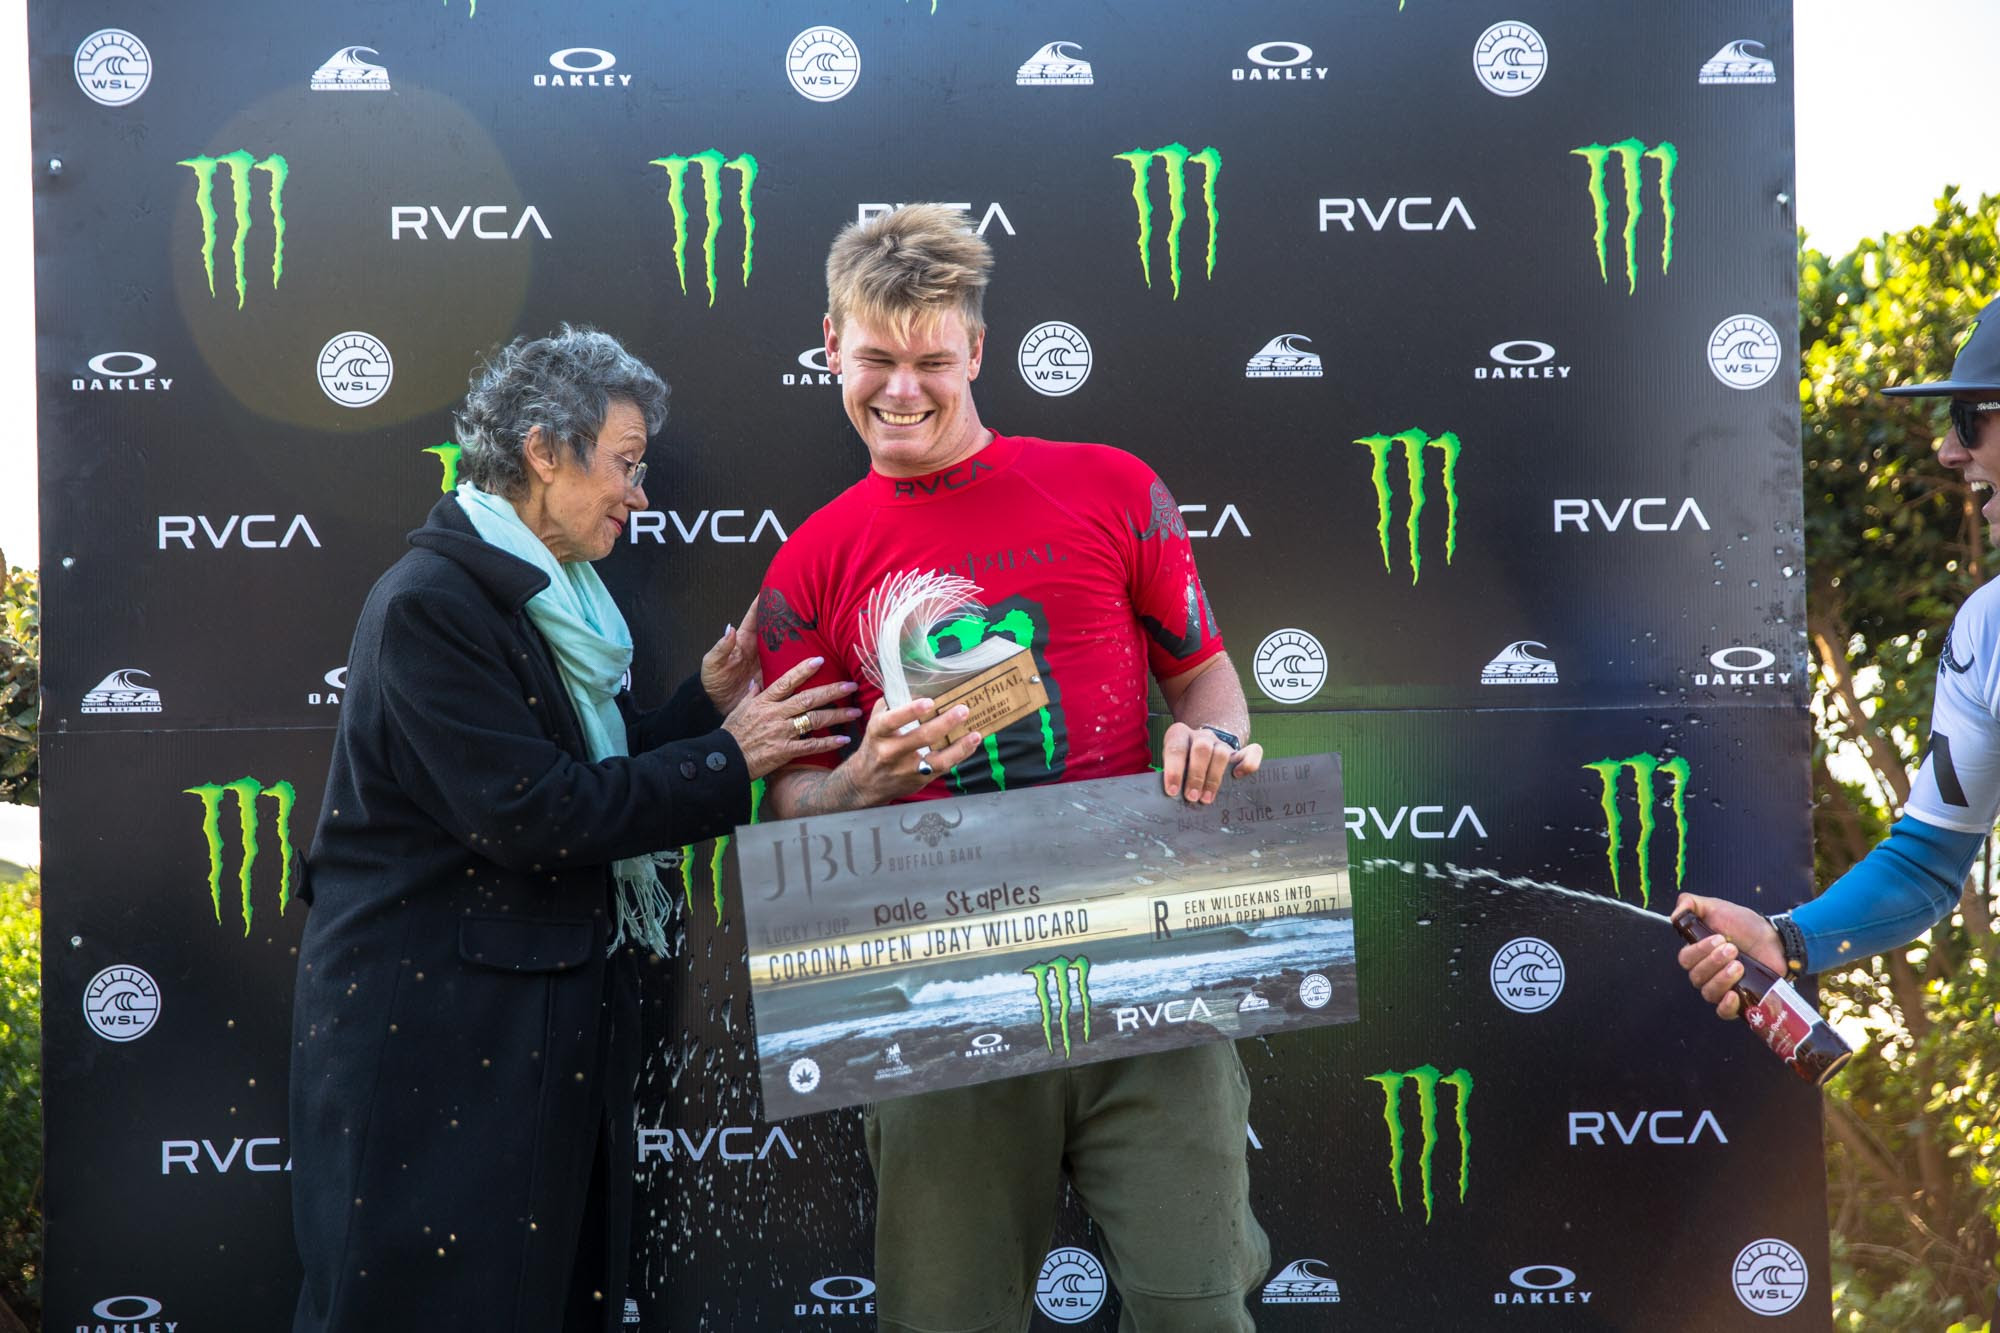 Kouga Mayor Elza Van Lingen came down to support the event and to hand the winner's trophy to Dale Staples, as runner-up Dylan Lightfoot cheers on. © Van Gysen